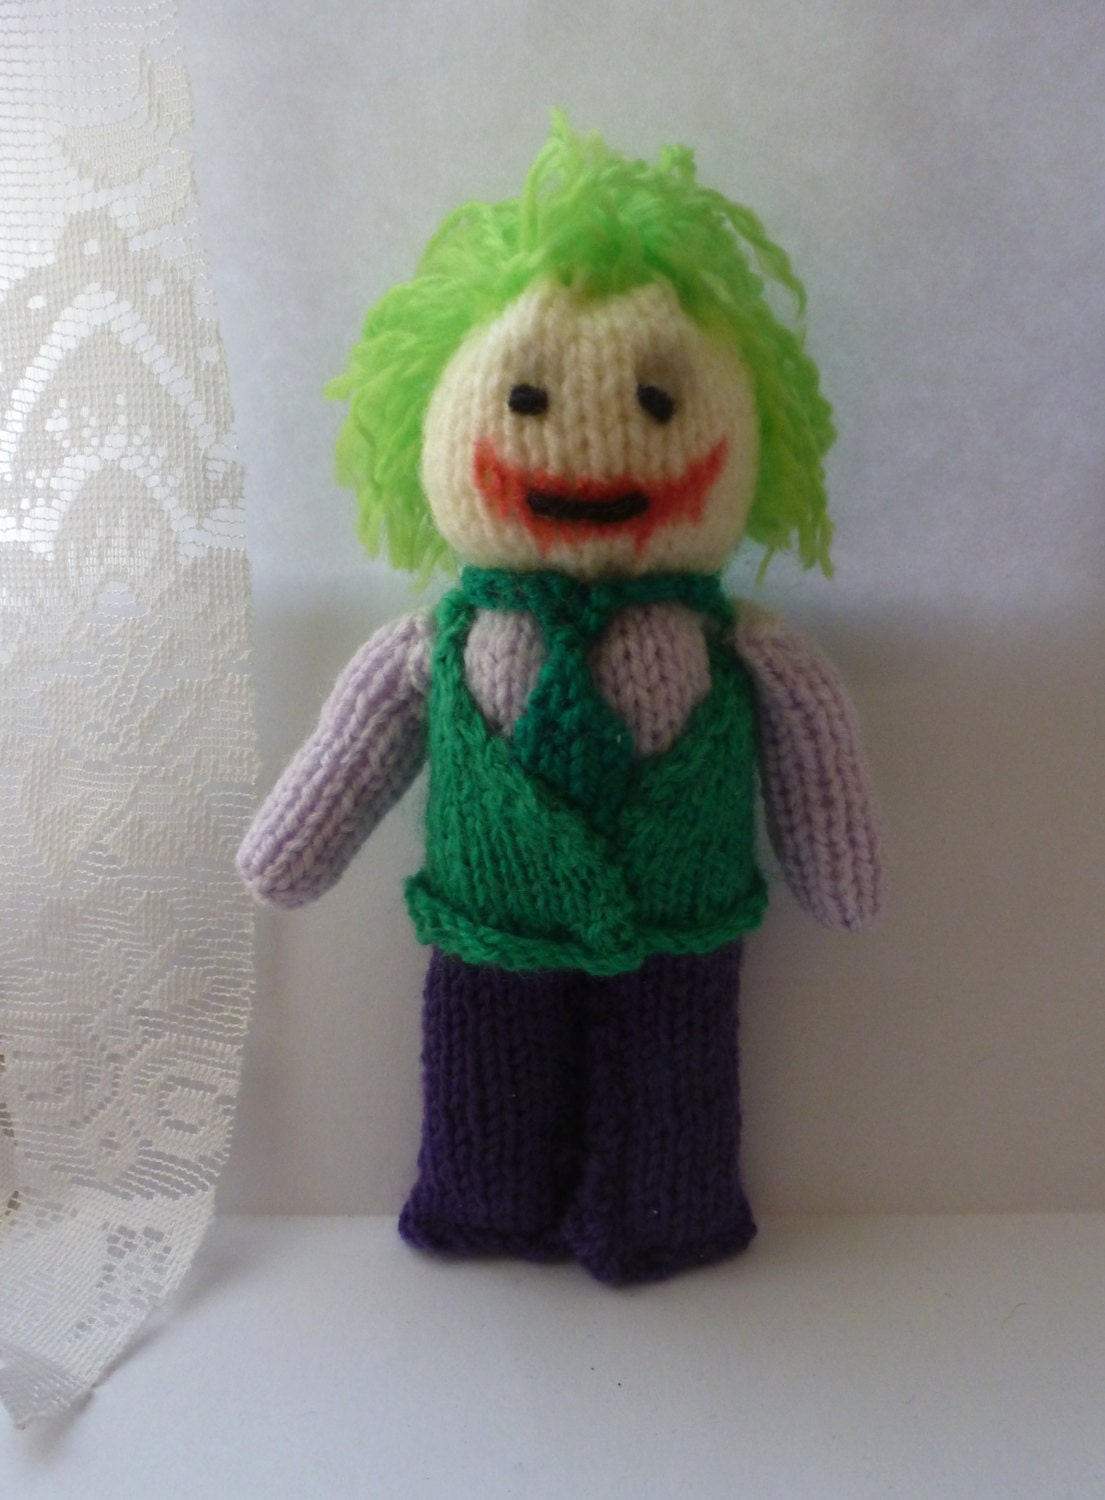 Joker Batman knitted doll by NerdKnitting on Etsy